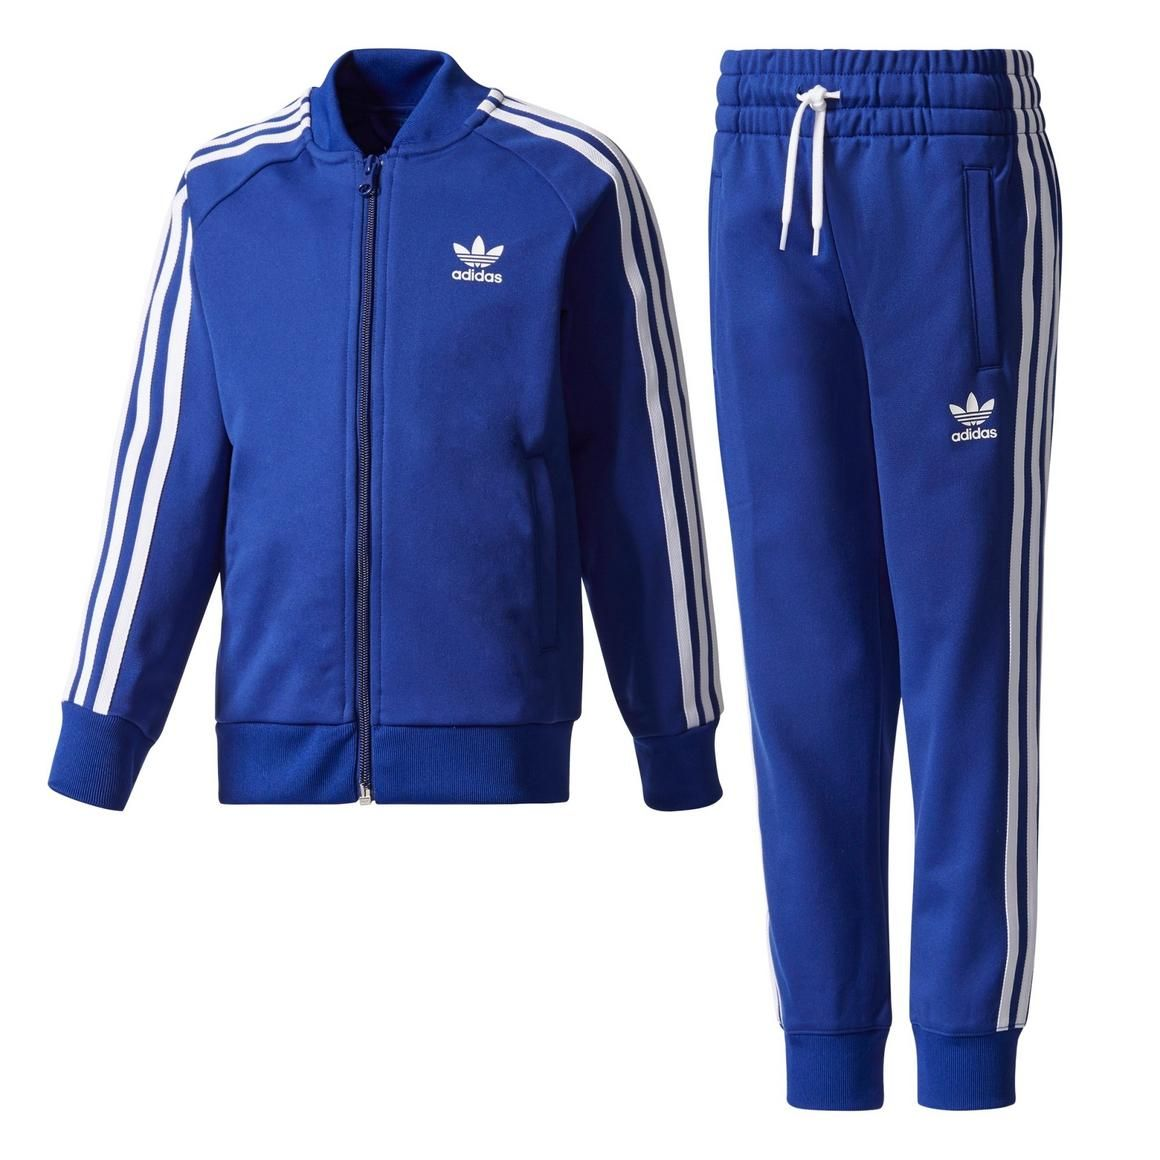 sells to buy detailed images adidas Originals Little Boys' Superstar Set - Main Container ...